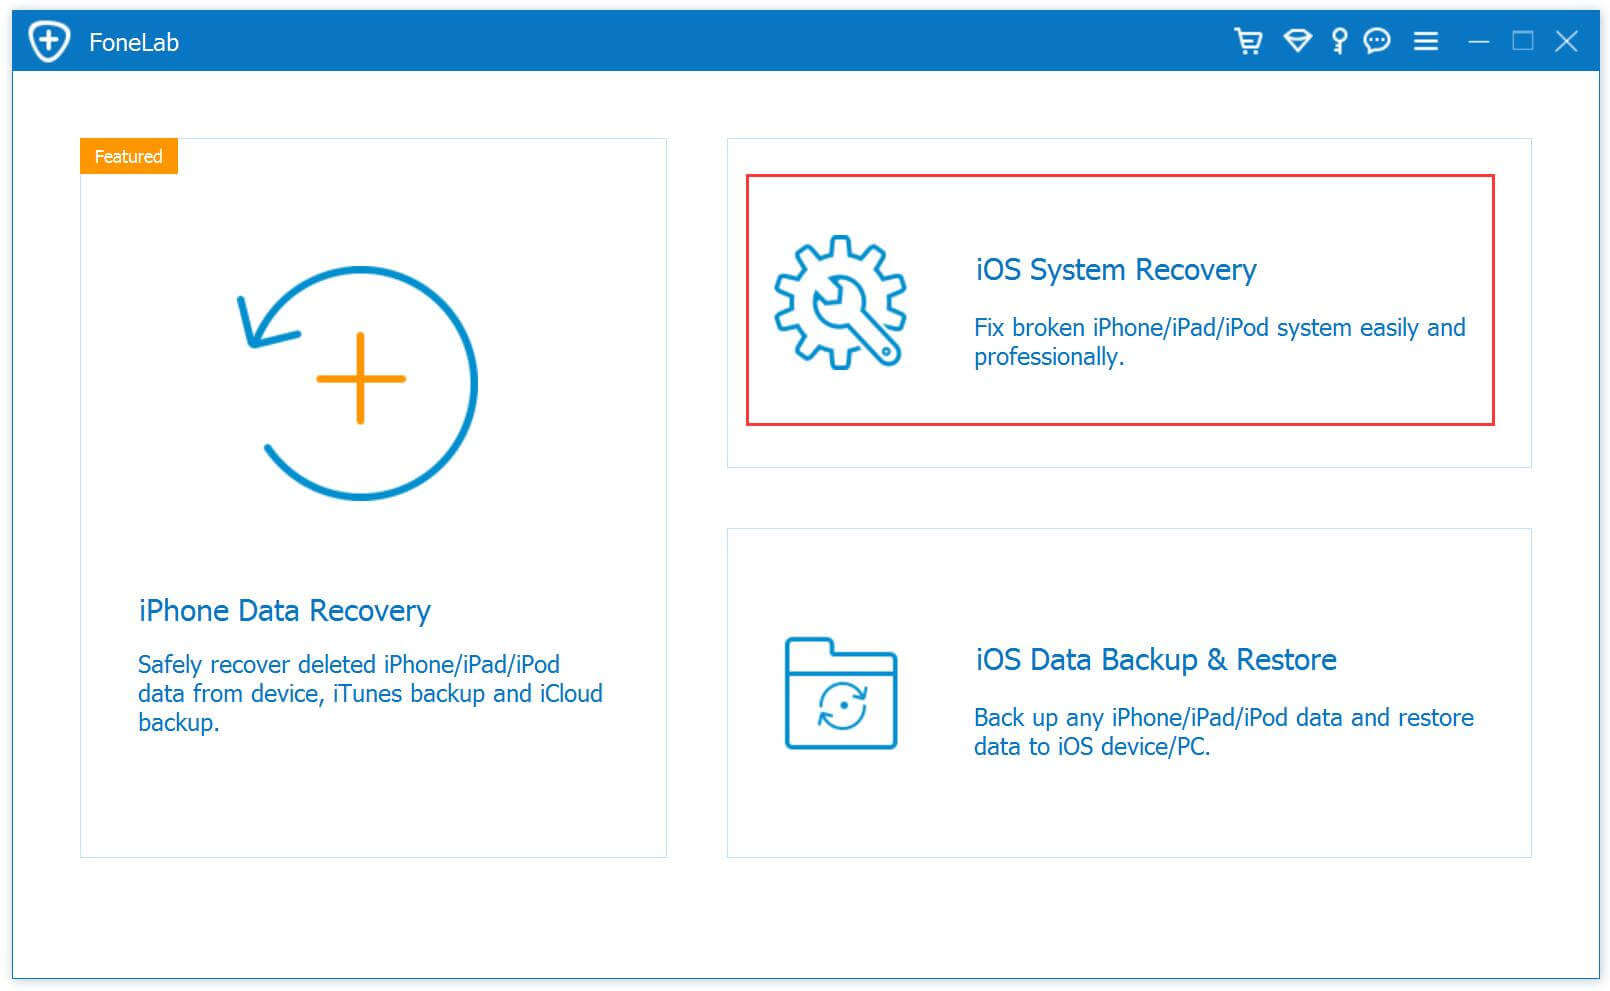 ios system recovery main page